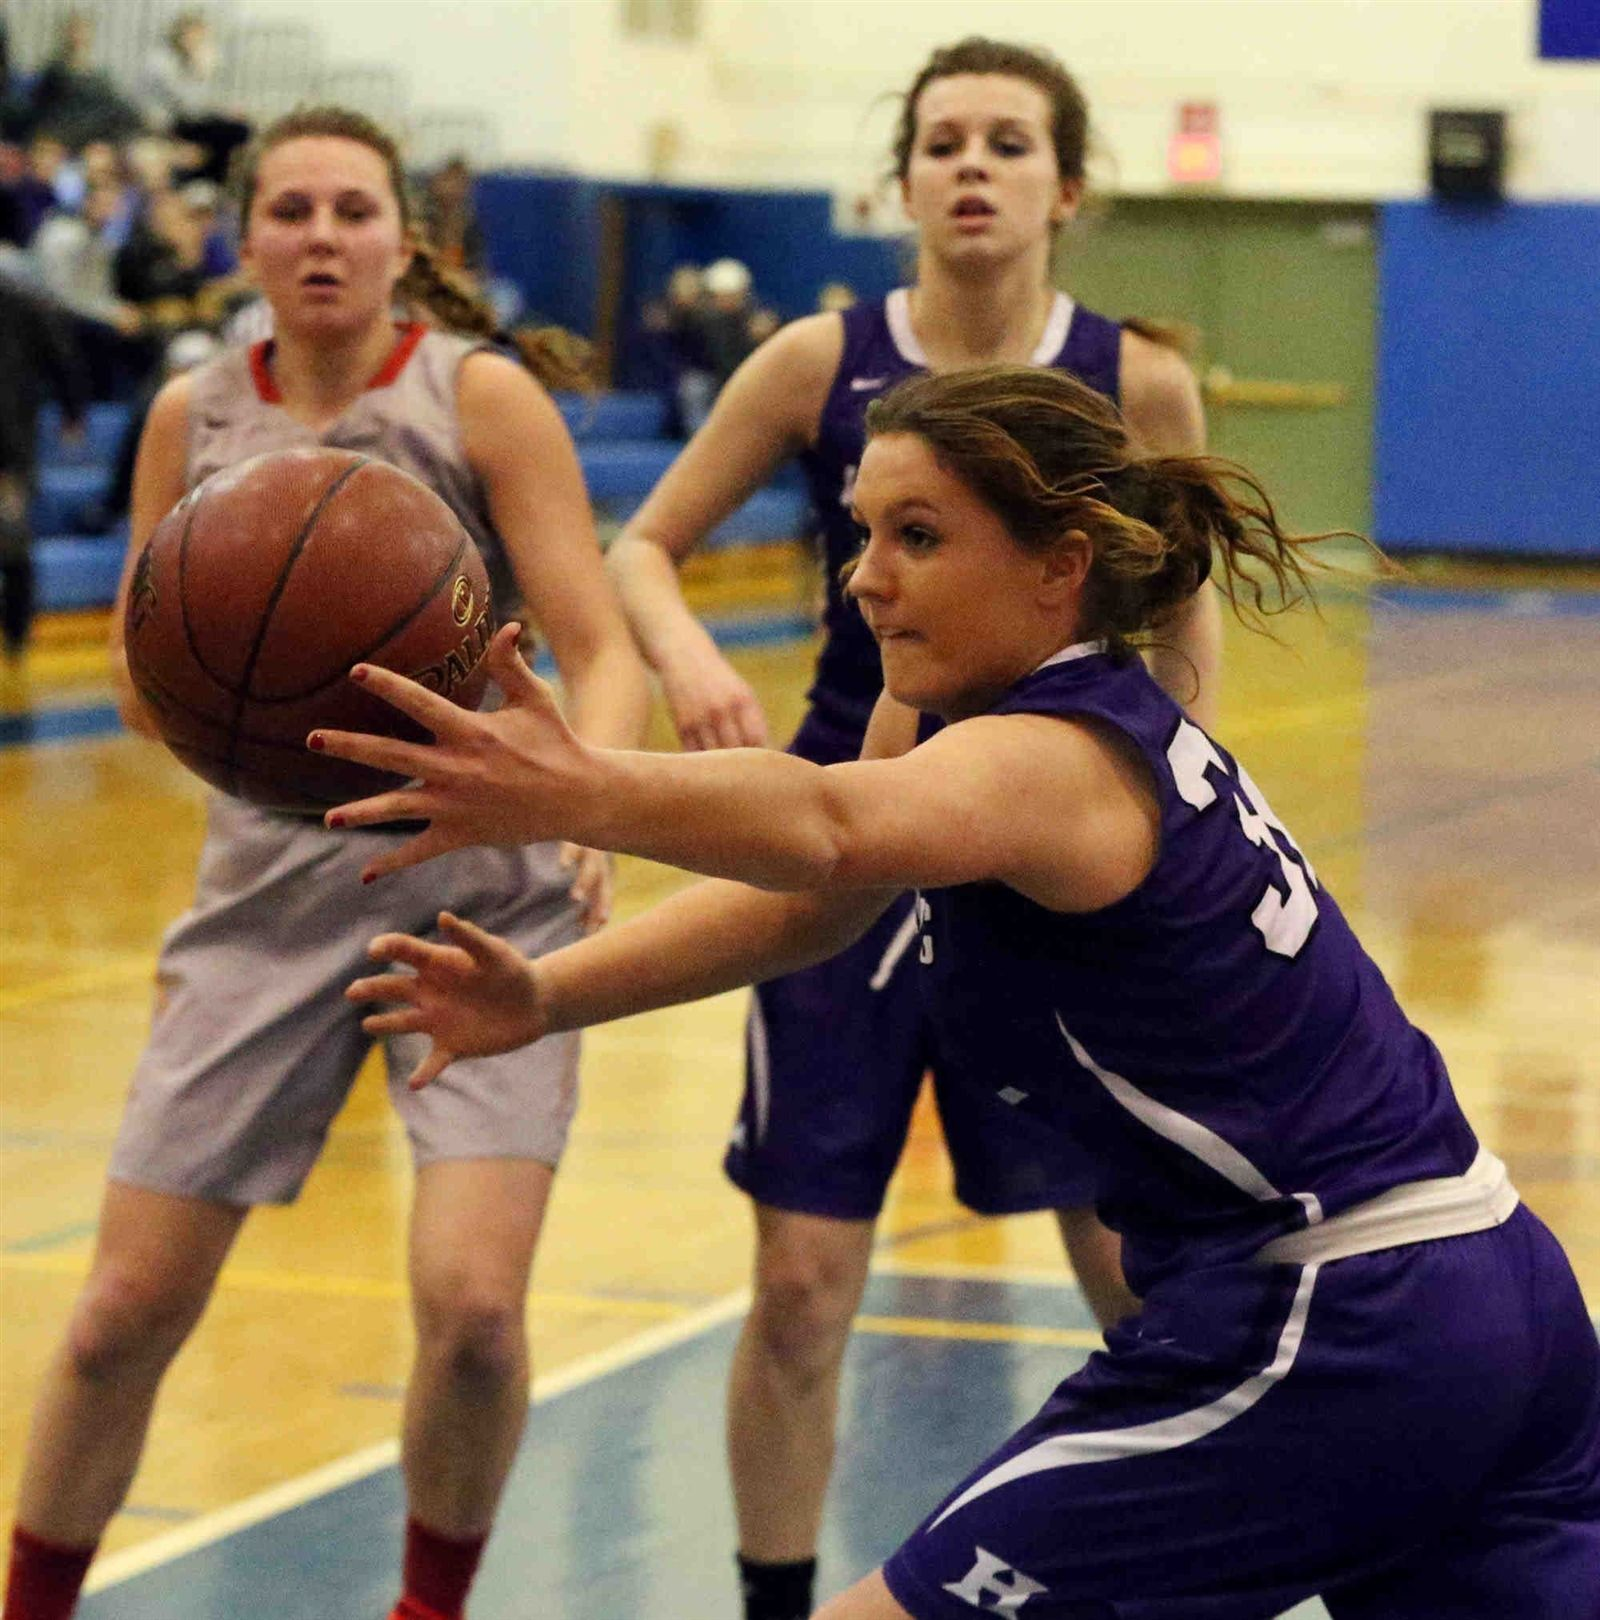 Williamsville East's Carly Shifflet battles Hamburg's Heather Habeman for the ball in the first half at Kenmore West high school in Kenmore on Wednesday, Feb. 24, 2016.